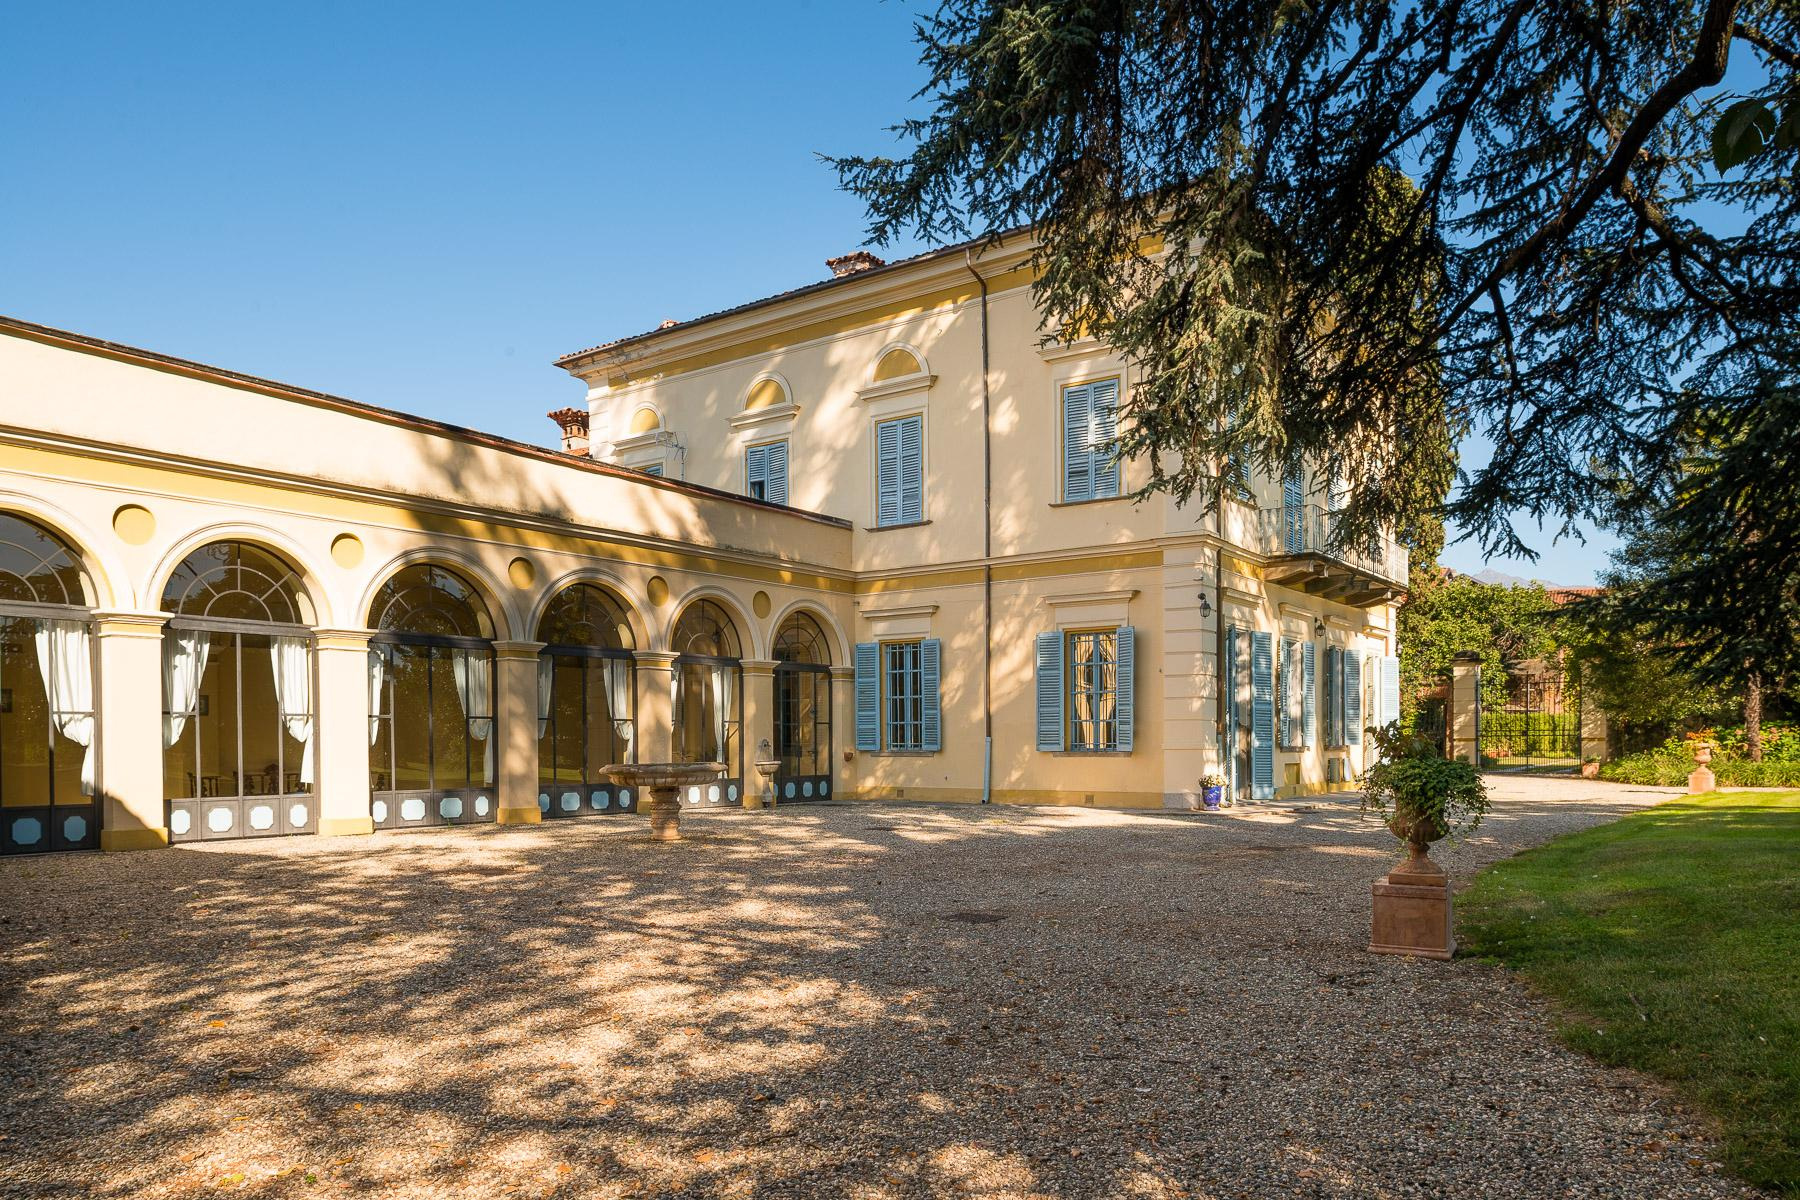 Elegant Villa in the Canavese countryside - 1